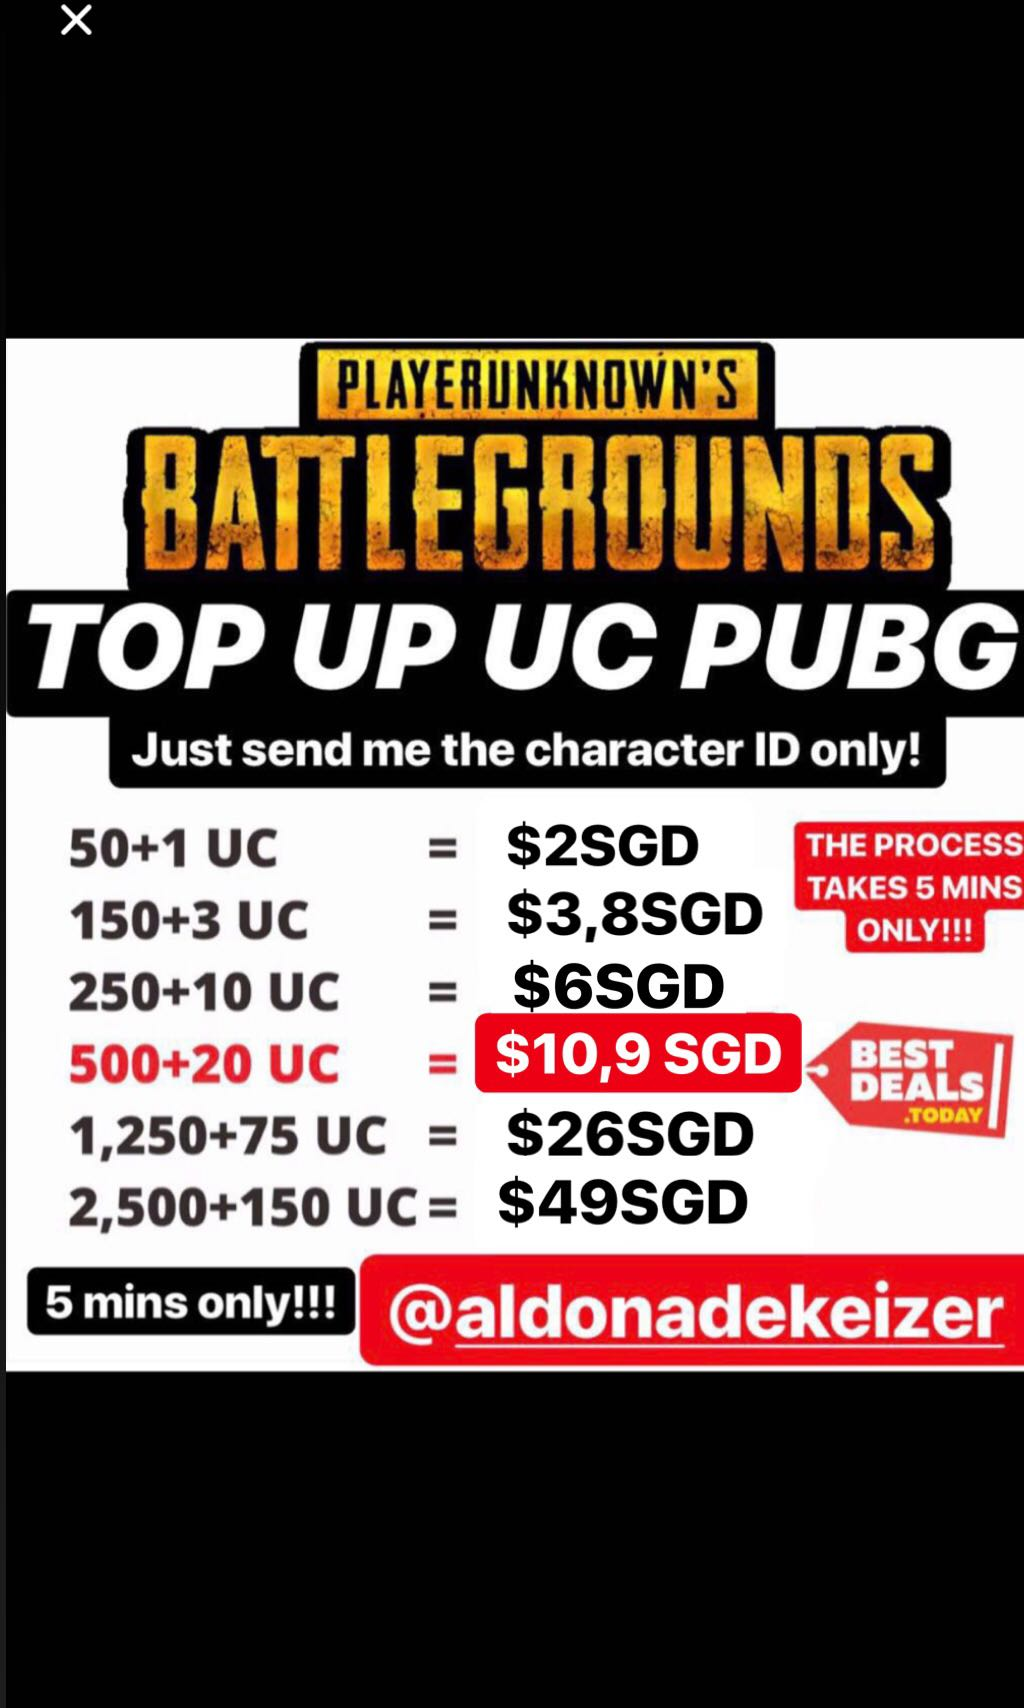 SELL PUBG UC TRUSTED AND CHEAPER, Toys & Games, Video Gaming, Video